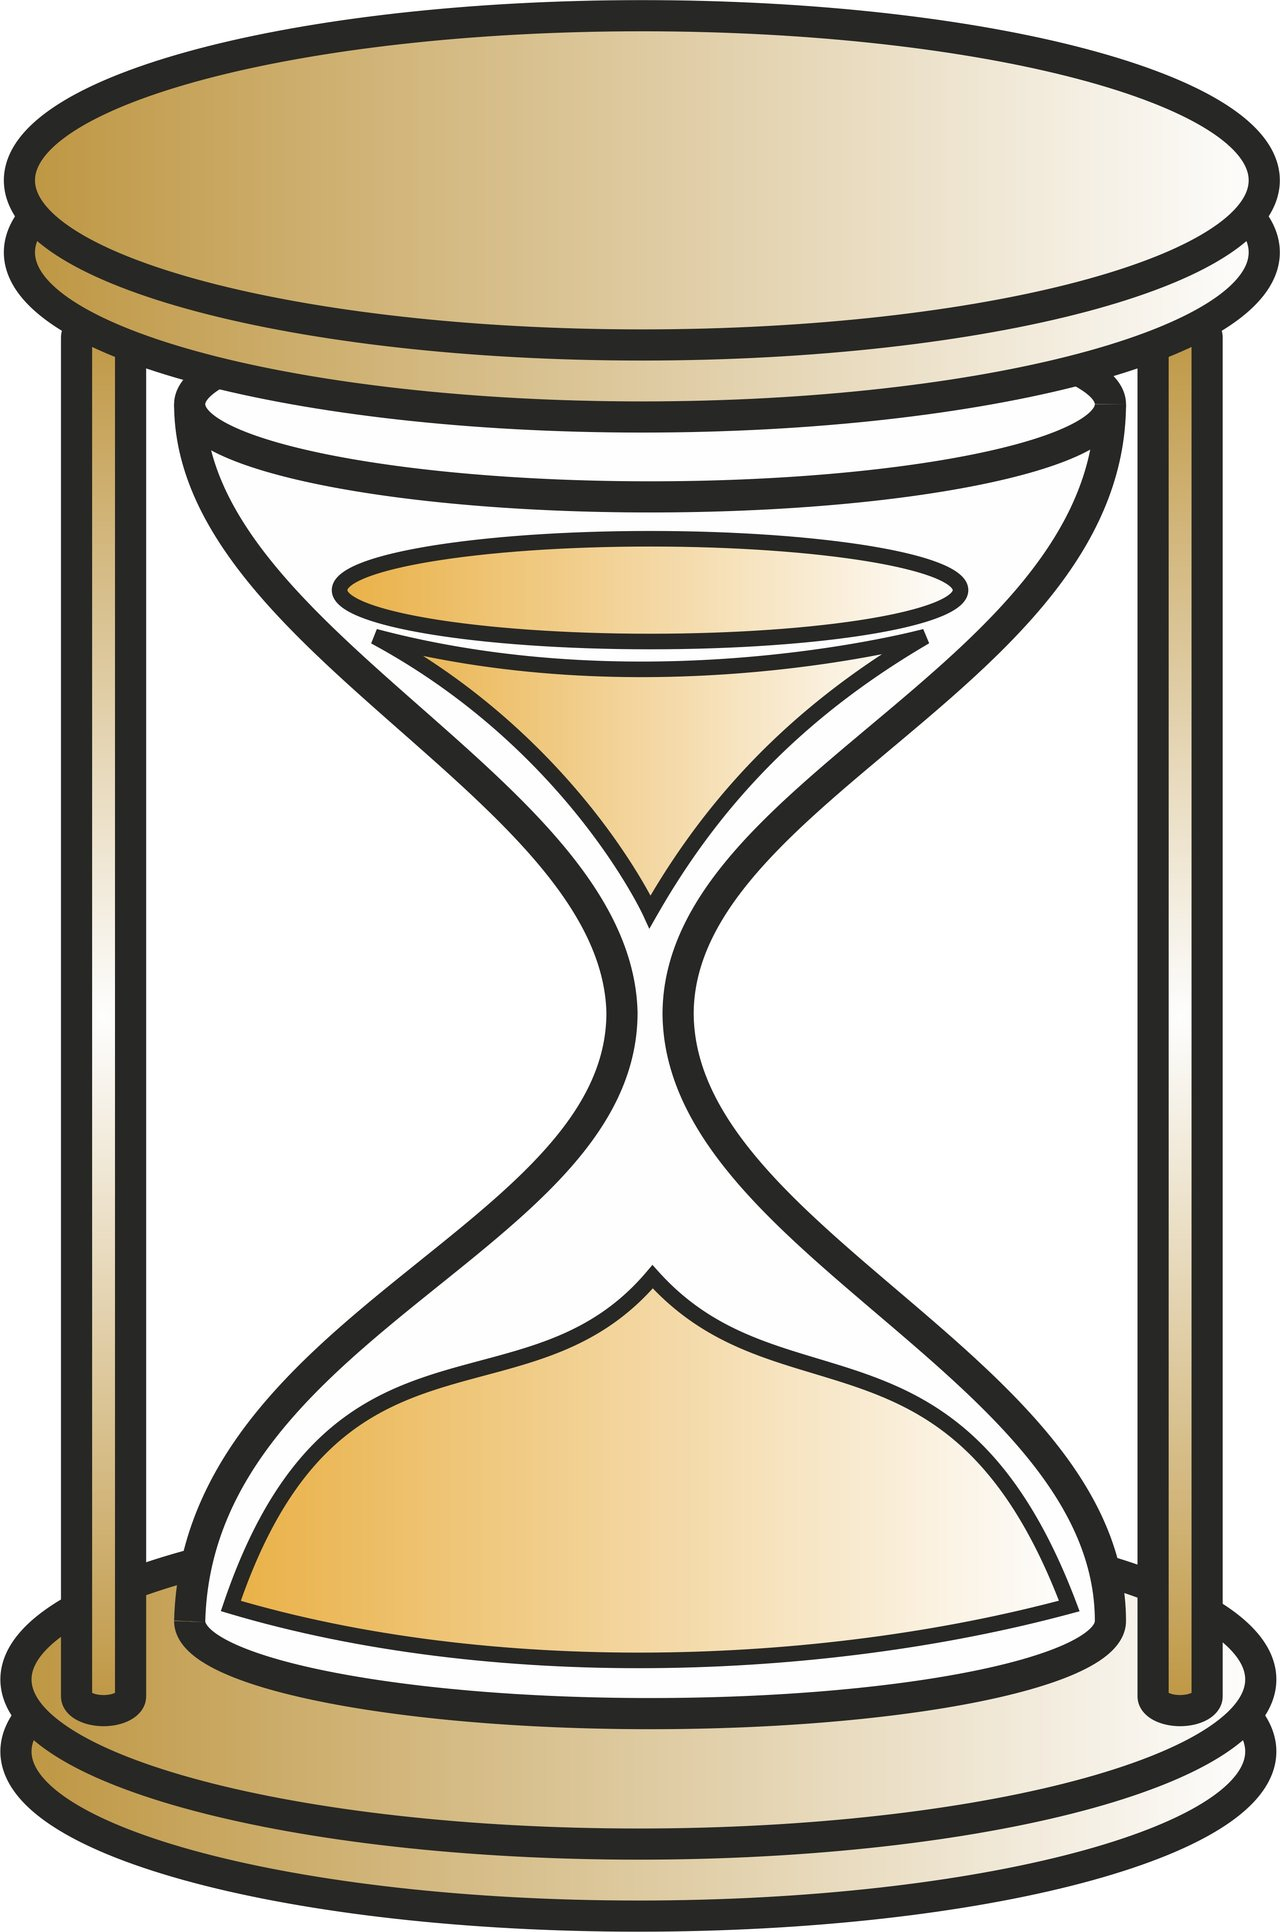 Hourglass pictures clip art